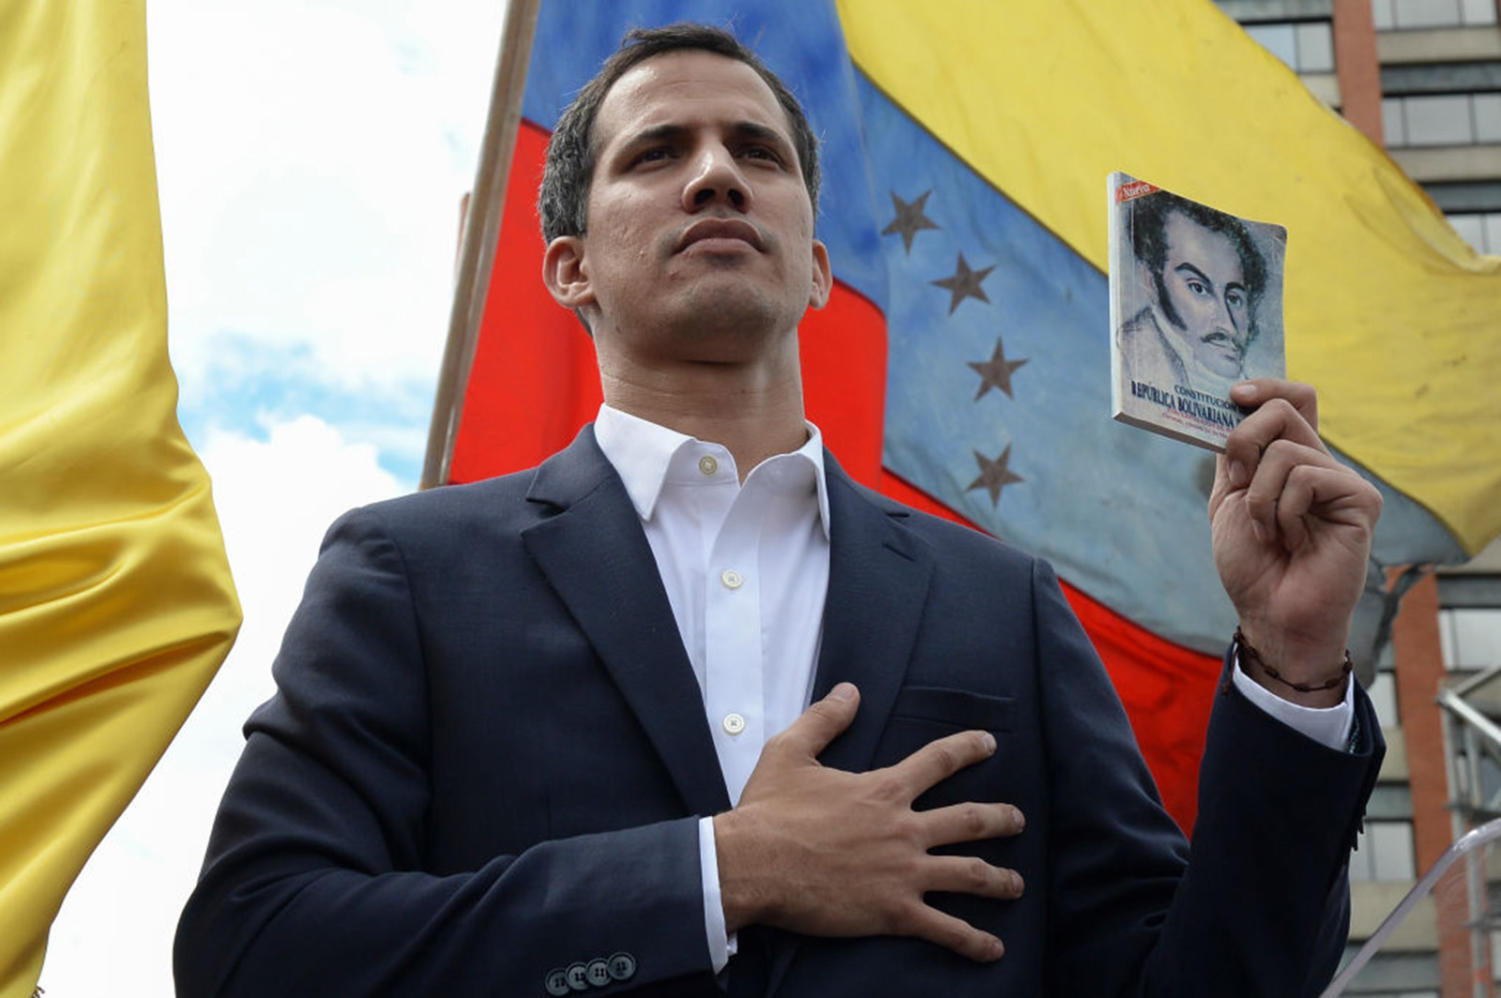 Venezuela's National Assembly head Juan Guaido declares himself the country's